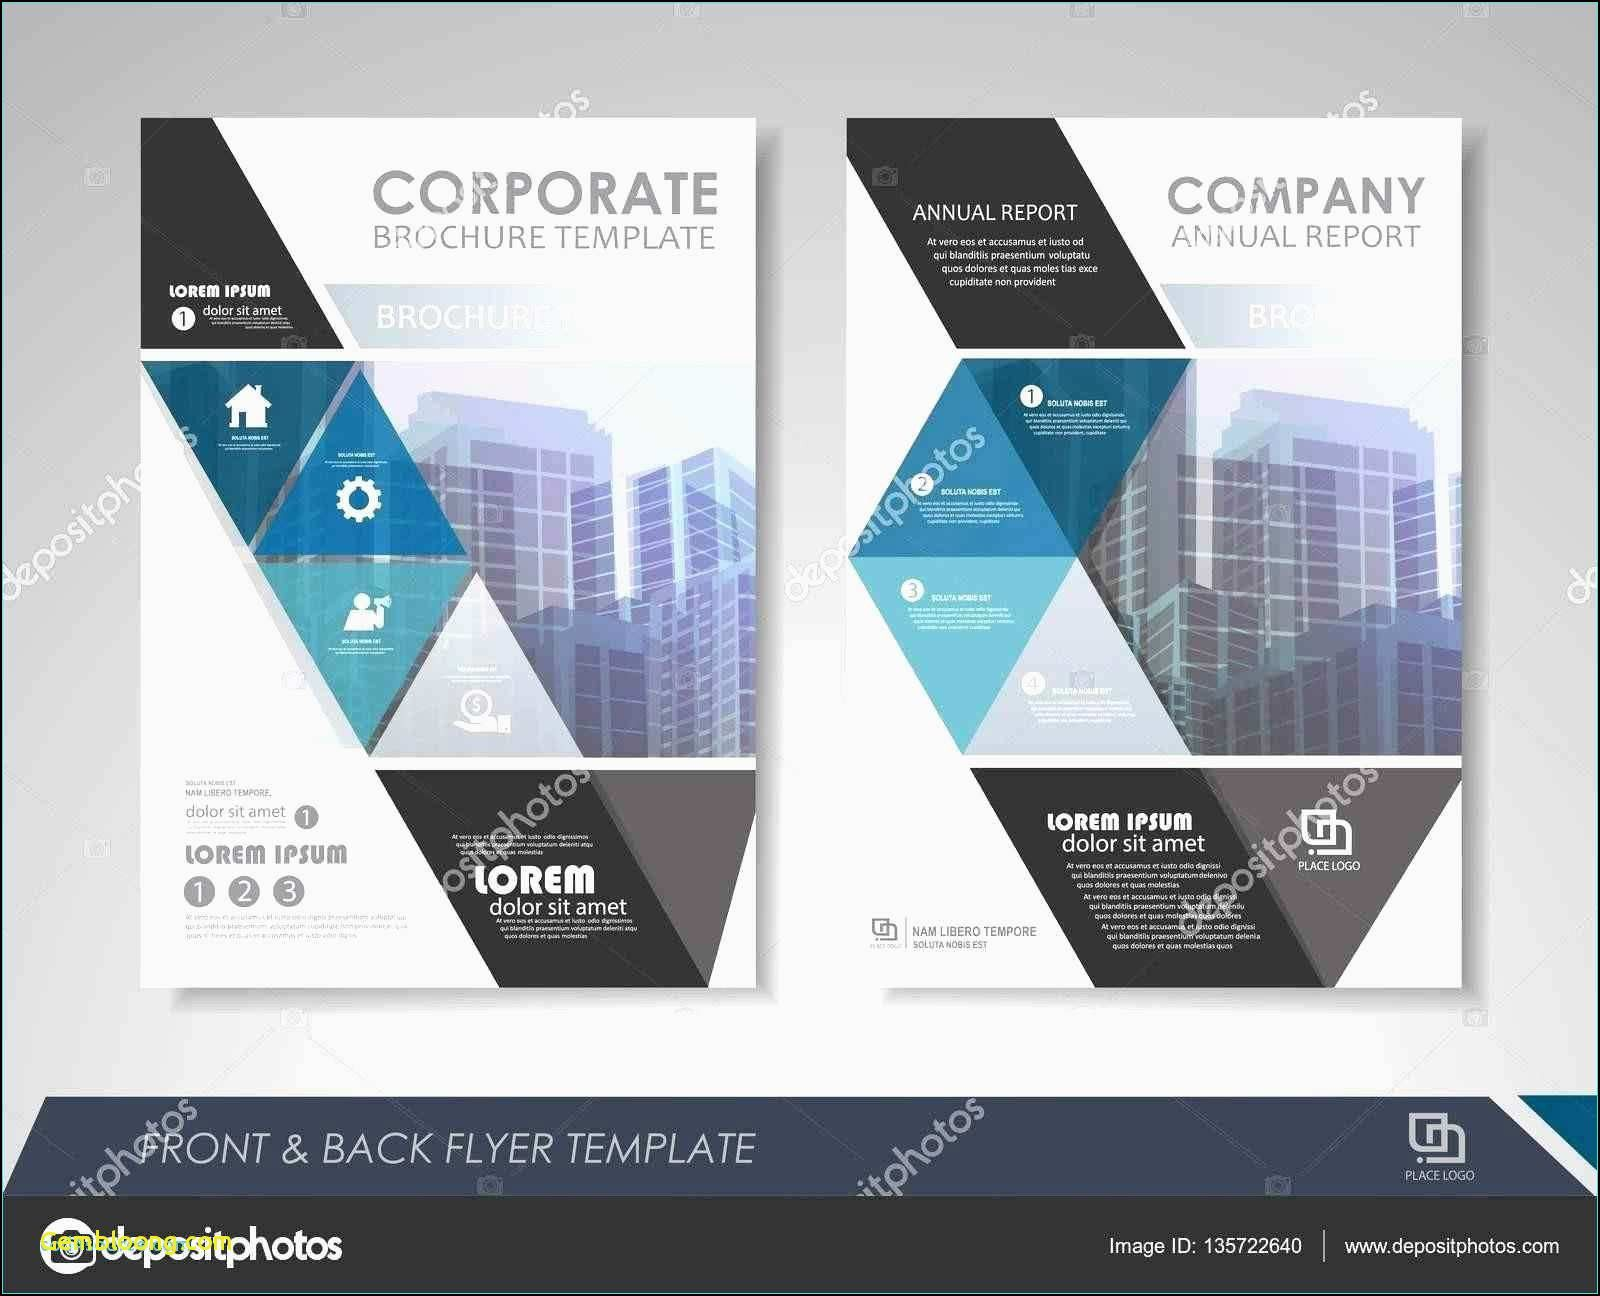 003 Exceptional Brochure Template Free Download Picture  Microsoft Publisher Corporate Psd For Adobe IllustratorFull